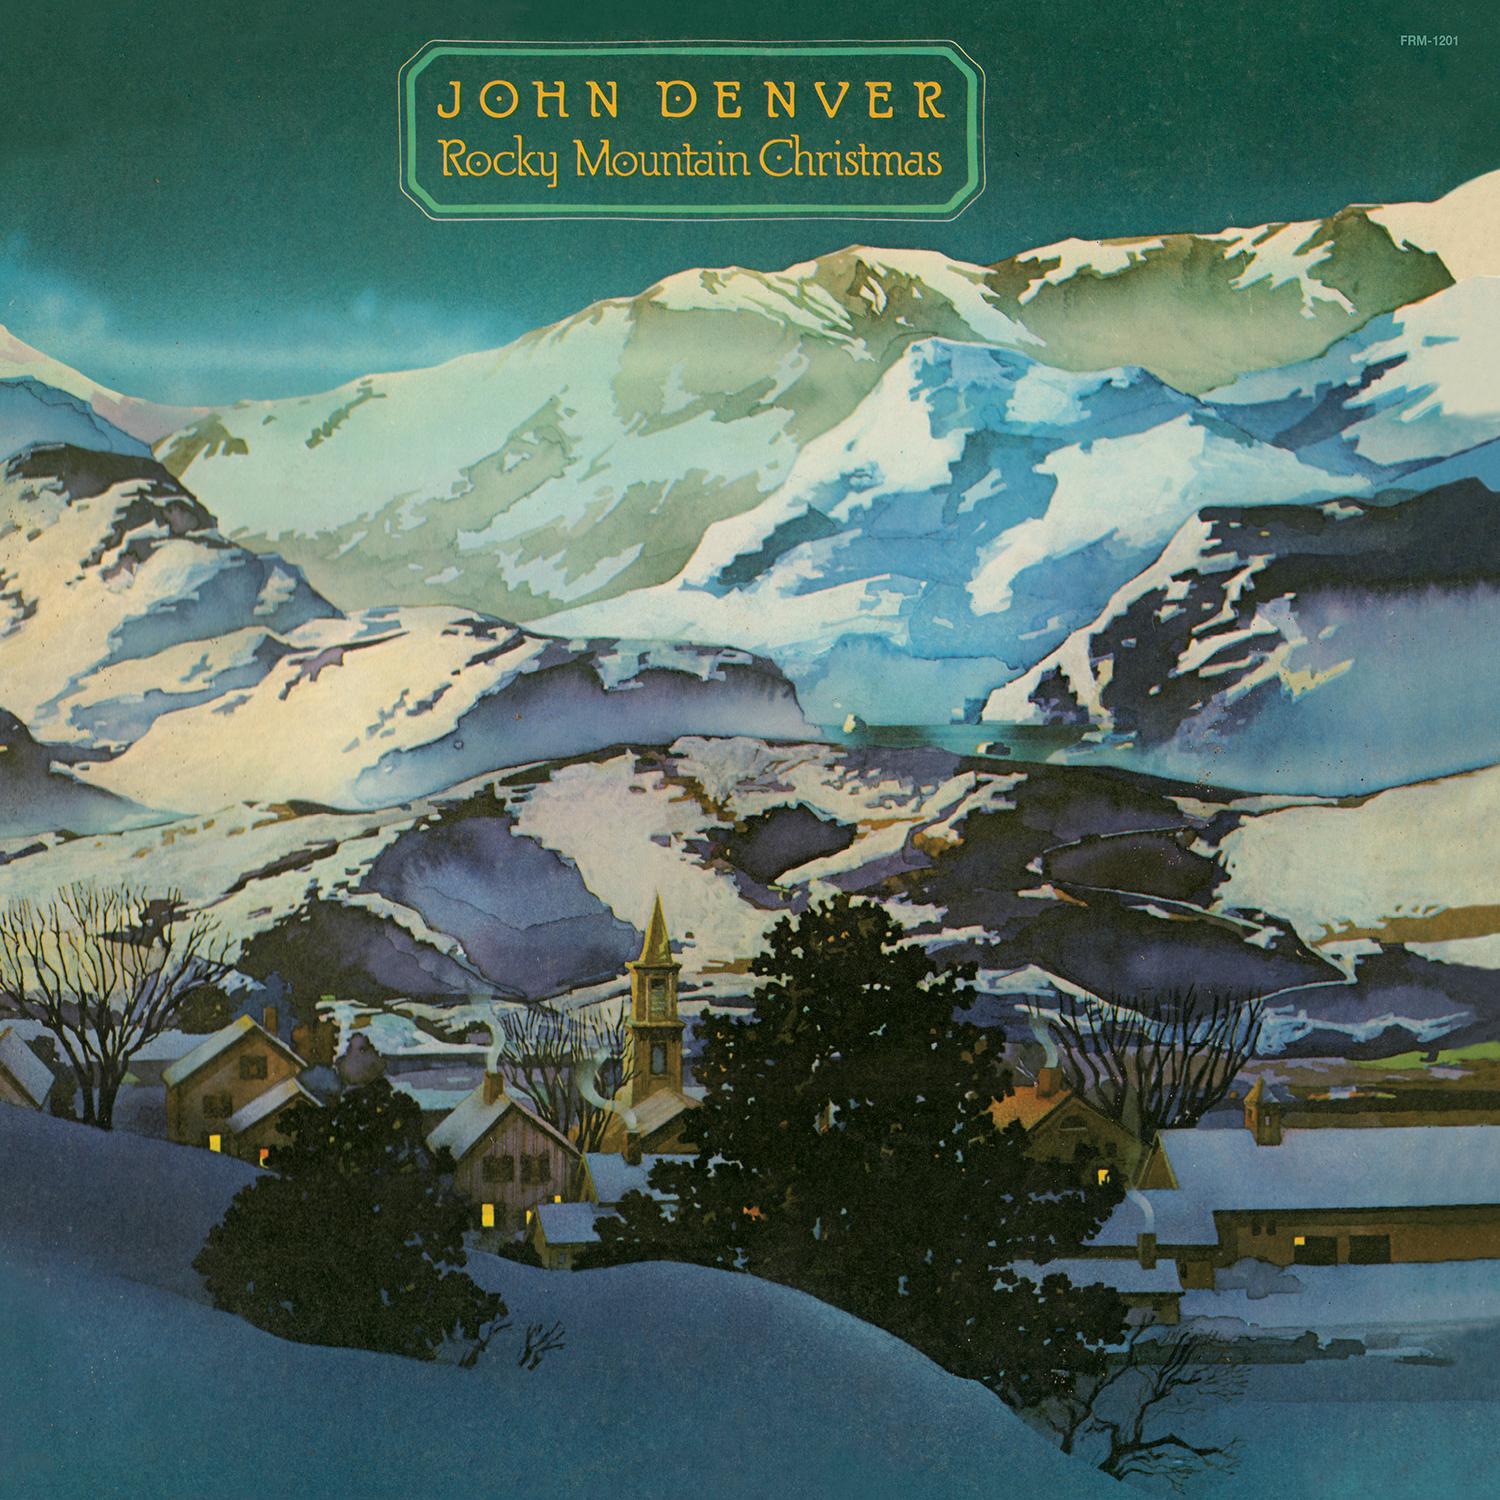 John Denver - Rocky Mountain Christmas (180 Gram Audiophile Blue Vinyl/Ltd. Edition/Gatefold Cover)